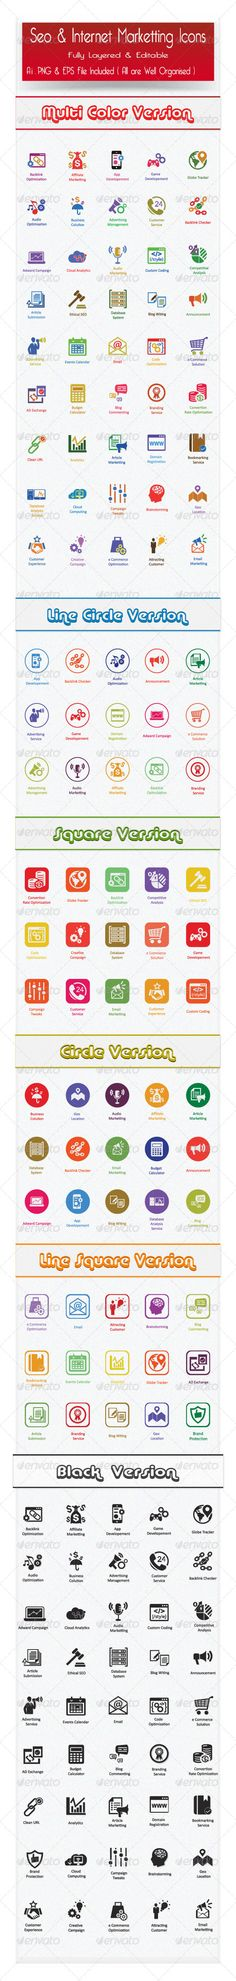 Icon - GraphicRiver Flat SEO Icons and Internet Marketing Icons 6582248 » Dondrup.com